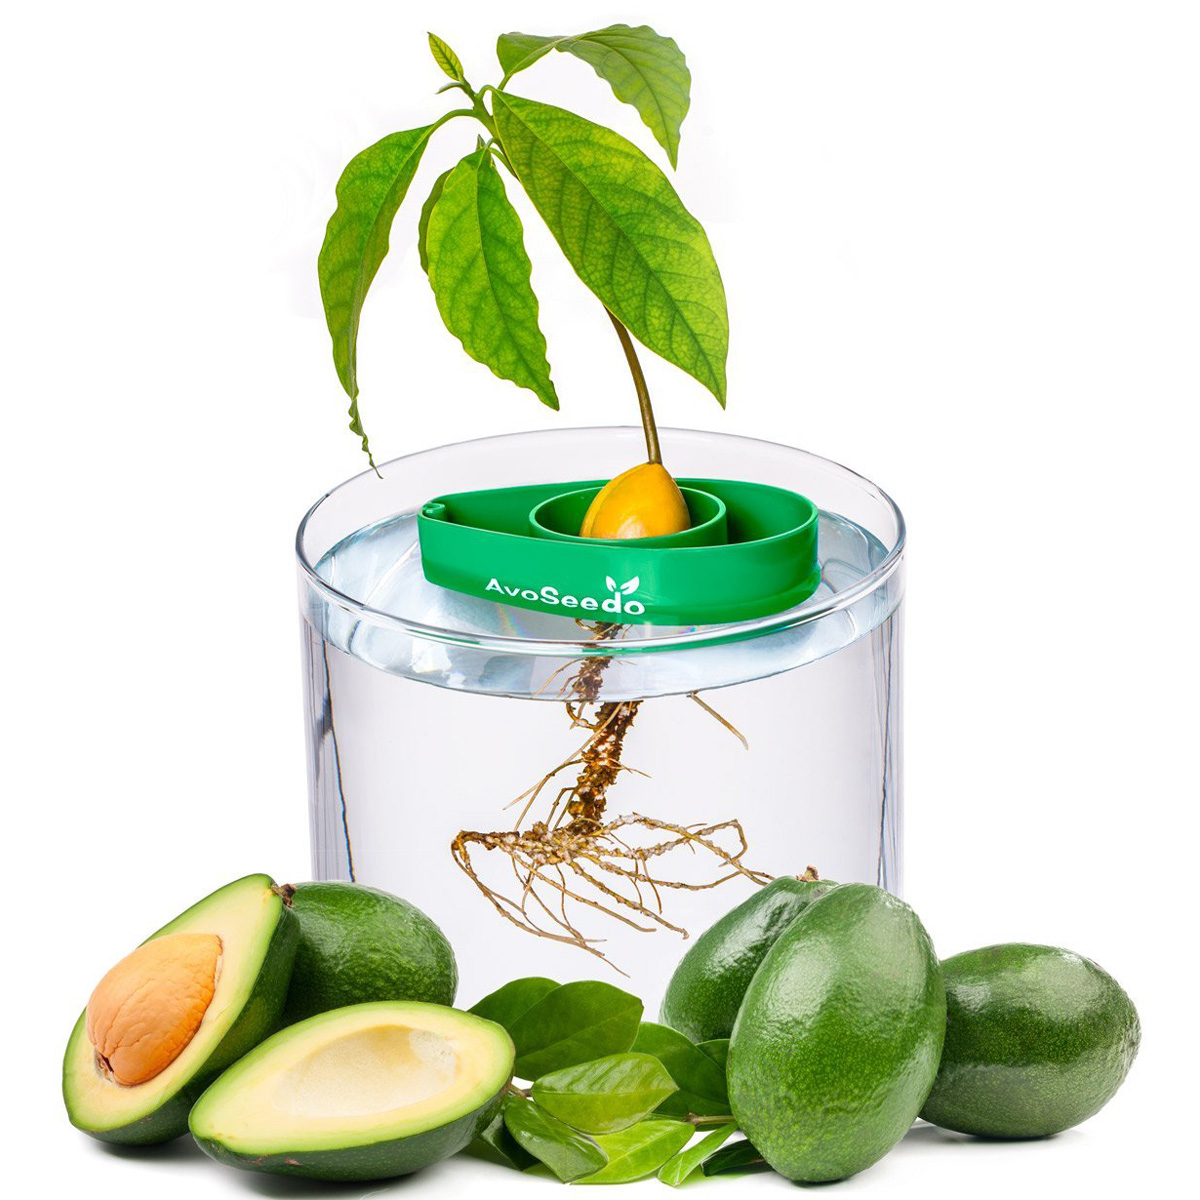 AvoSeedo Grow Your Own Avocado Tree The Green Head